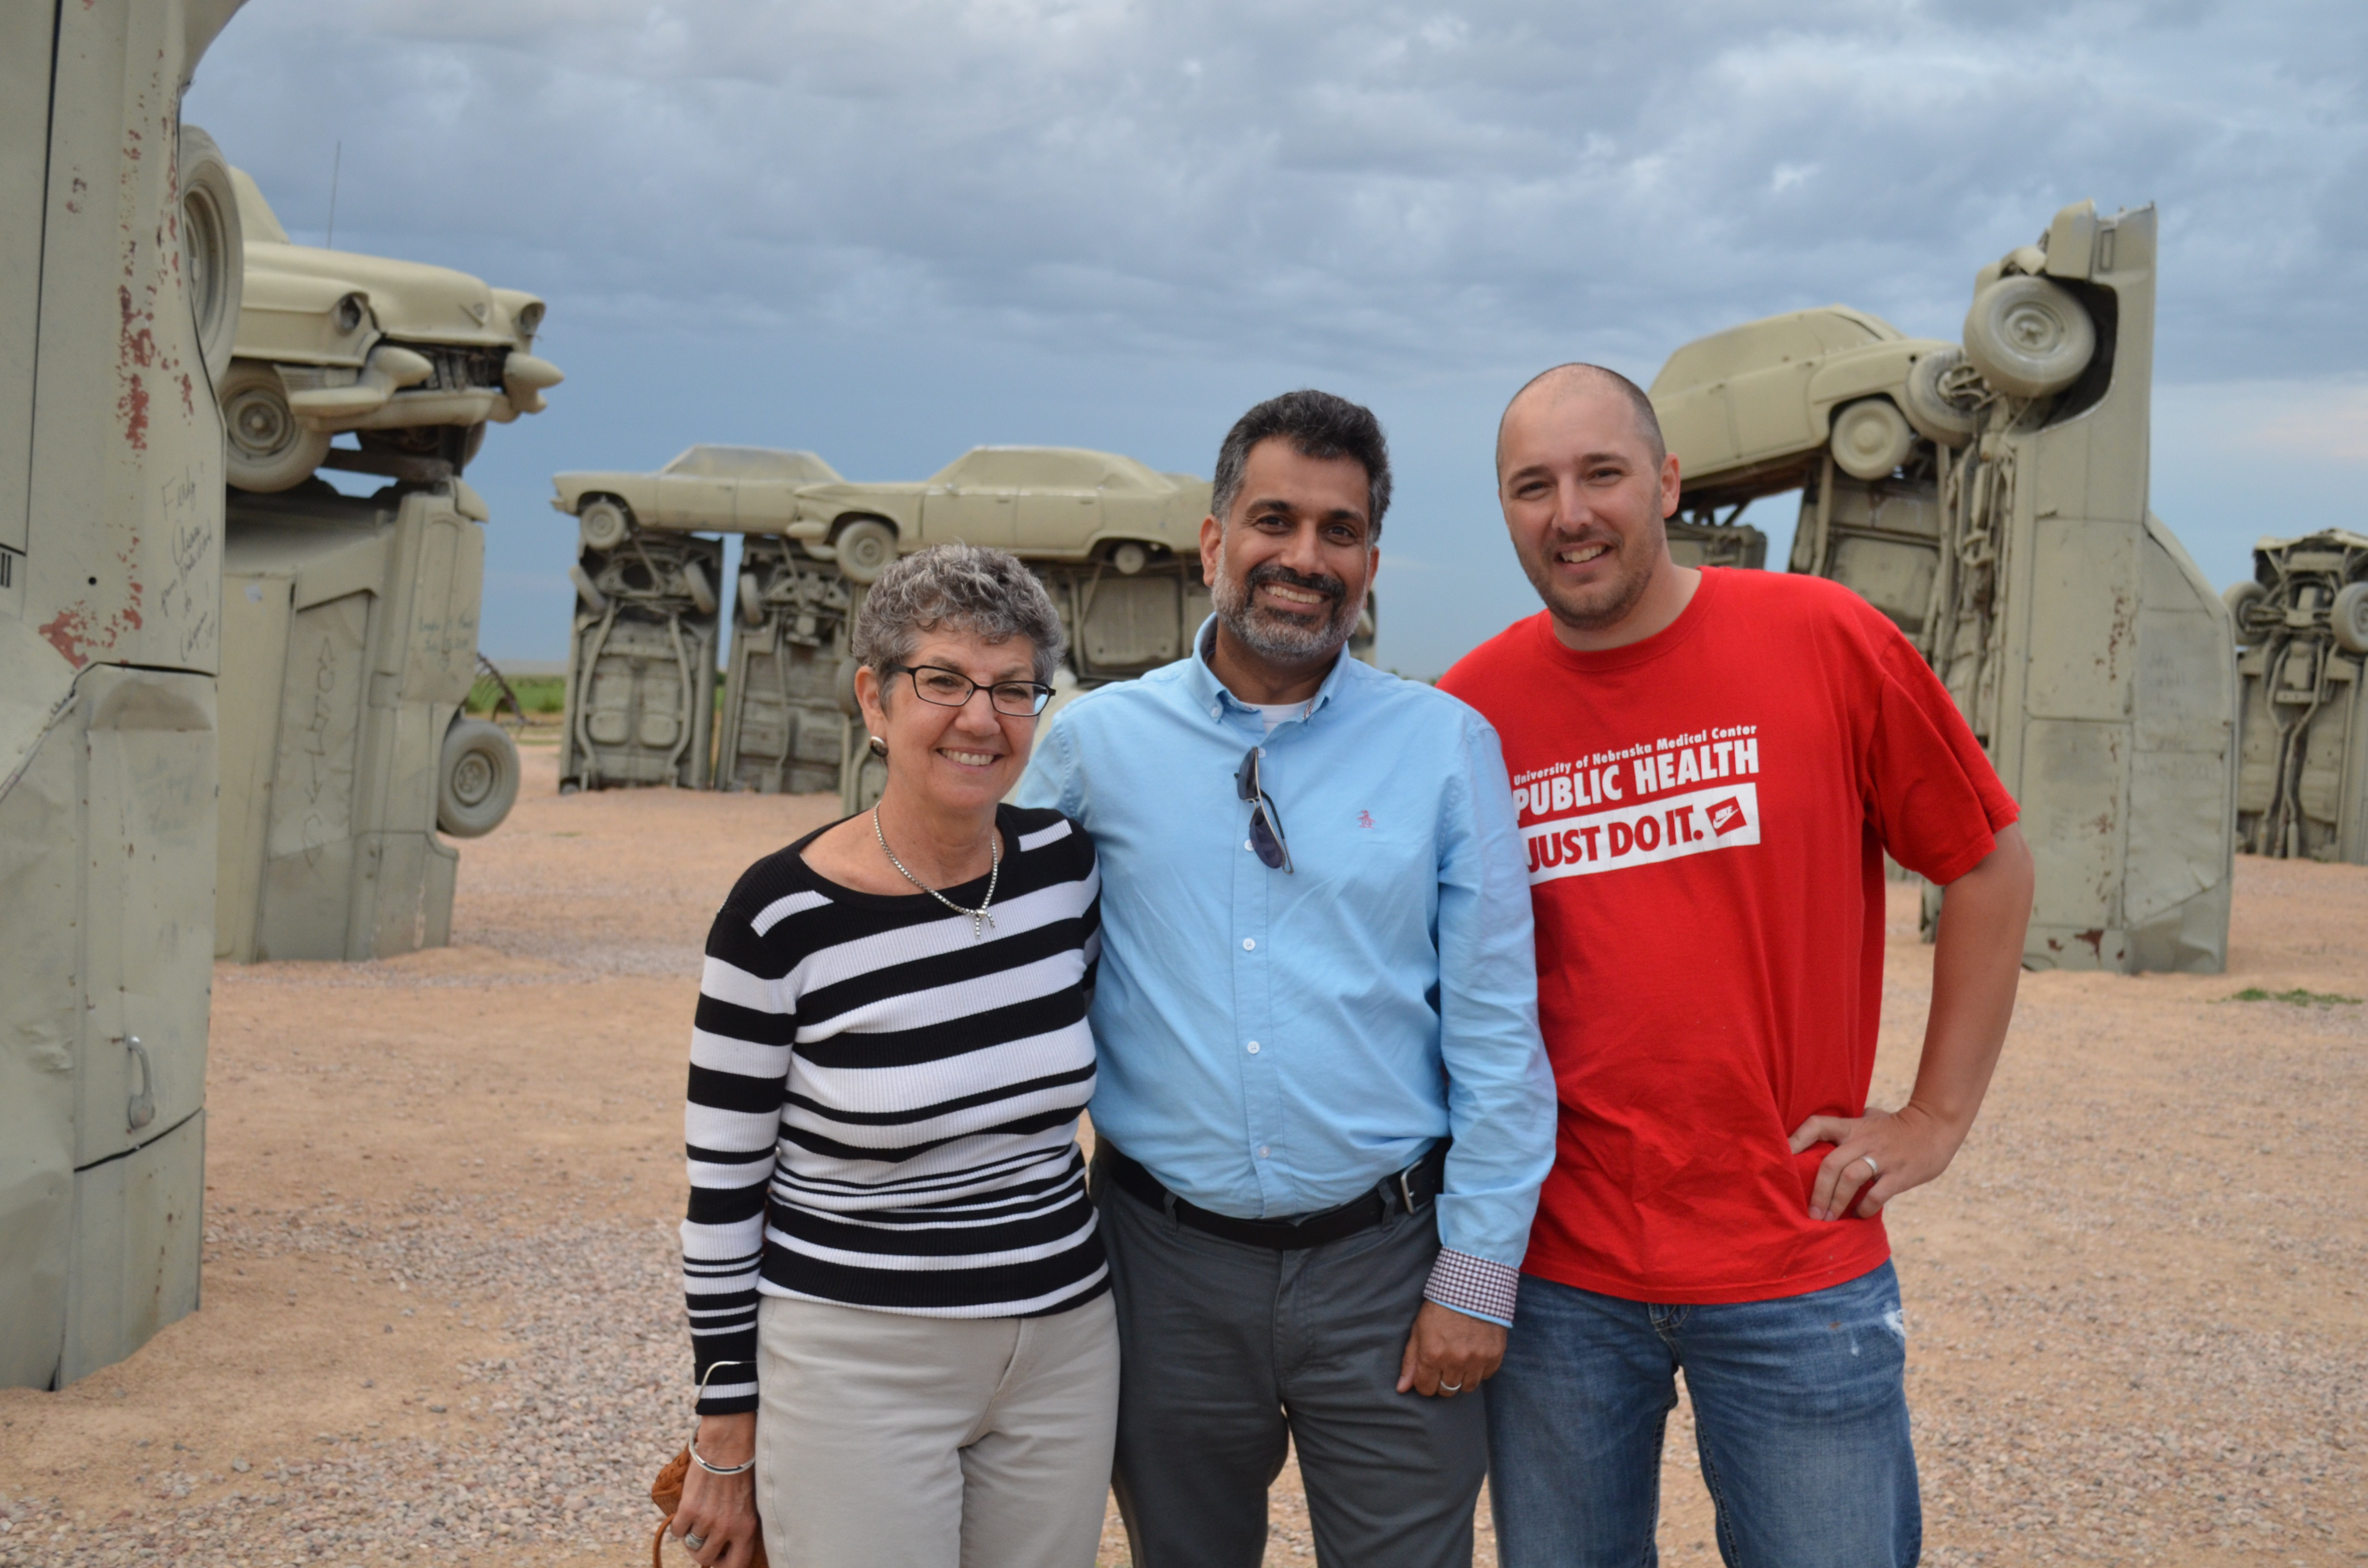 From left, Karen Levin, Dr. Khan and Brandon Grimm, Ph.D., at Carhenge.